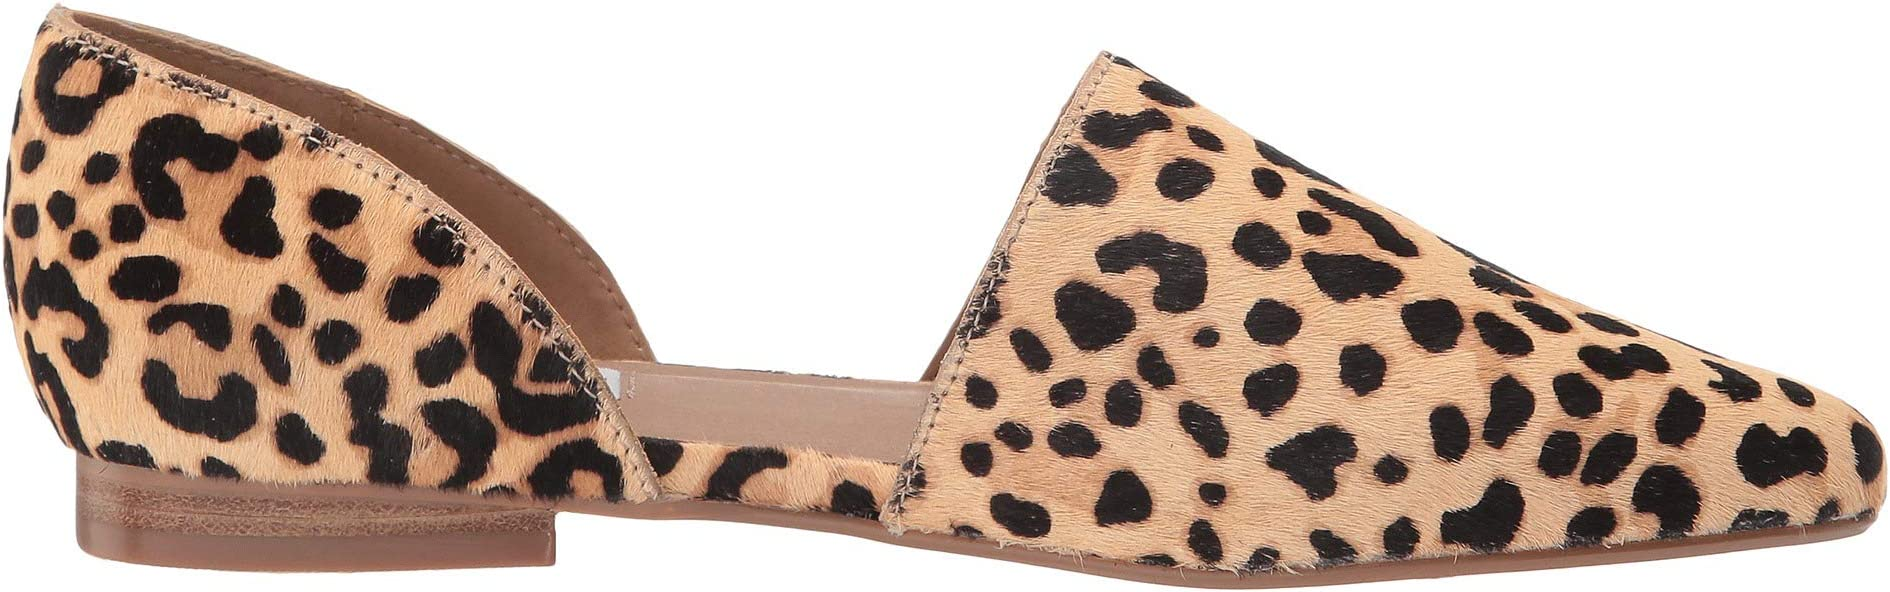 Steve Madden Talent-L Flat